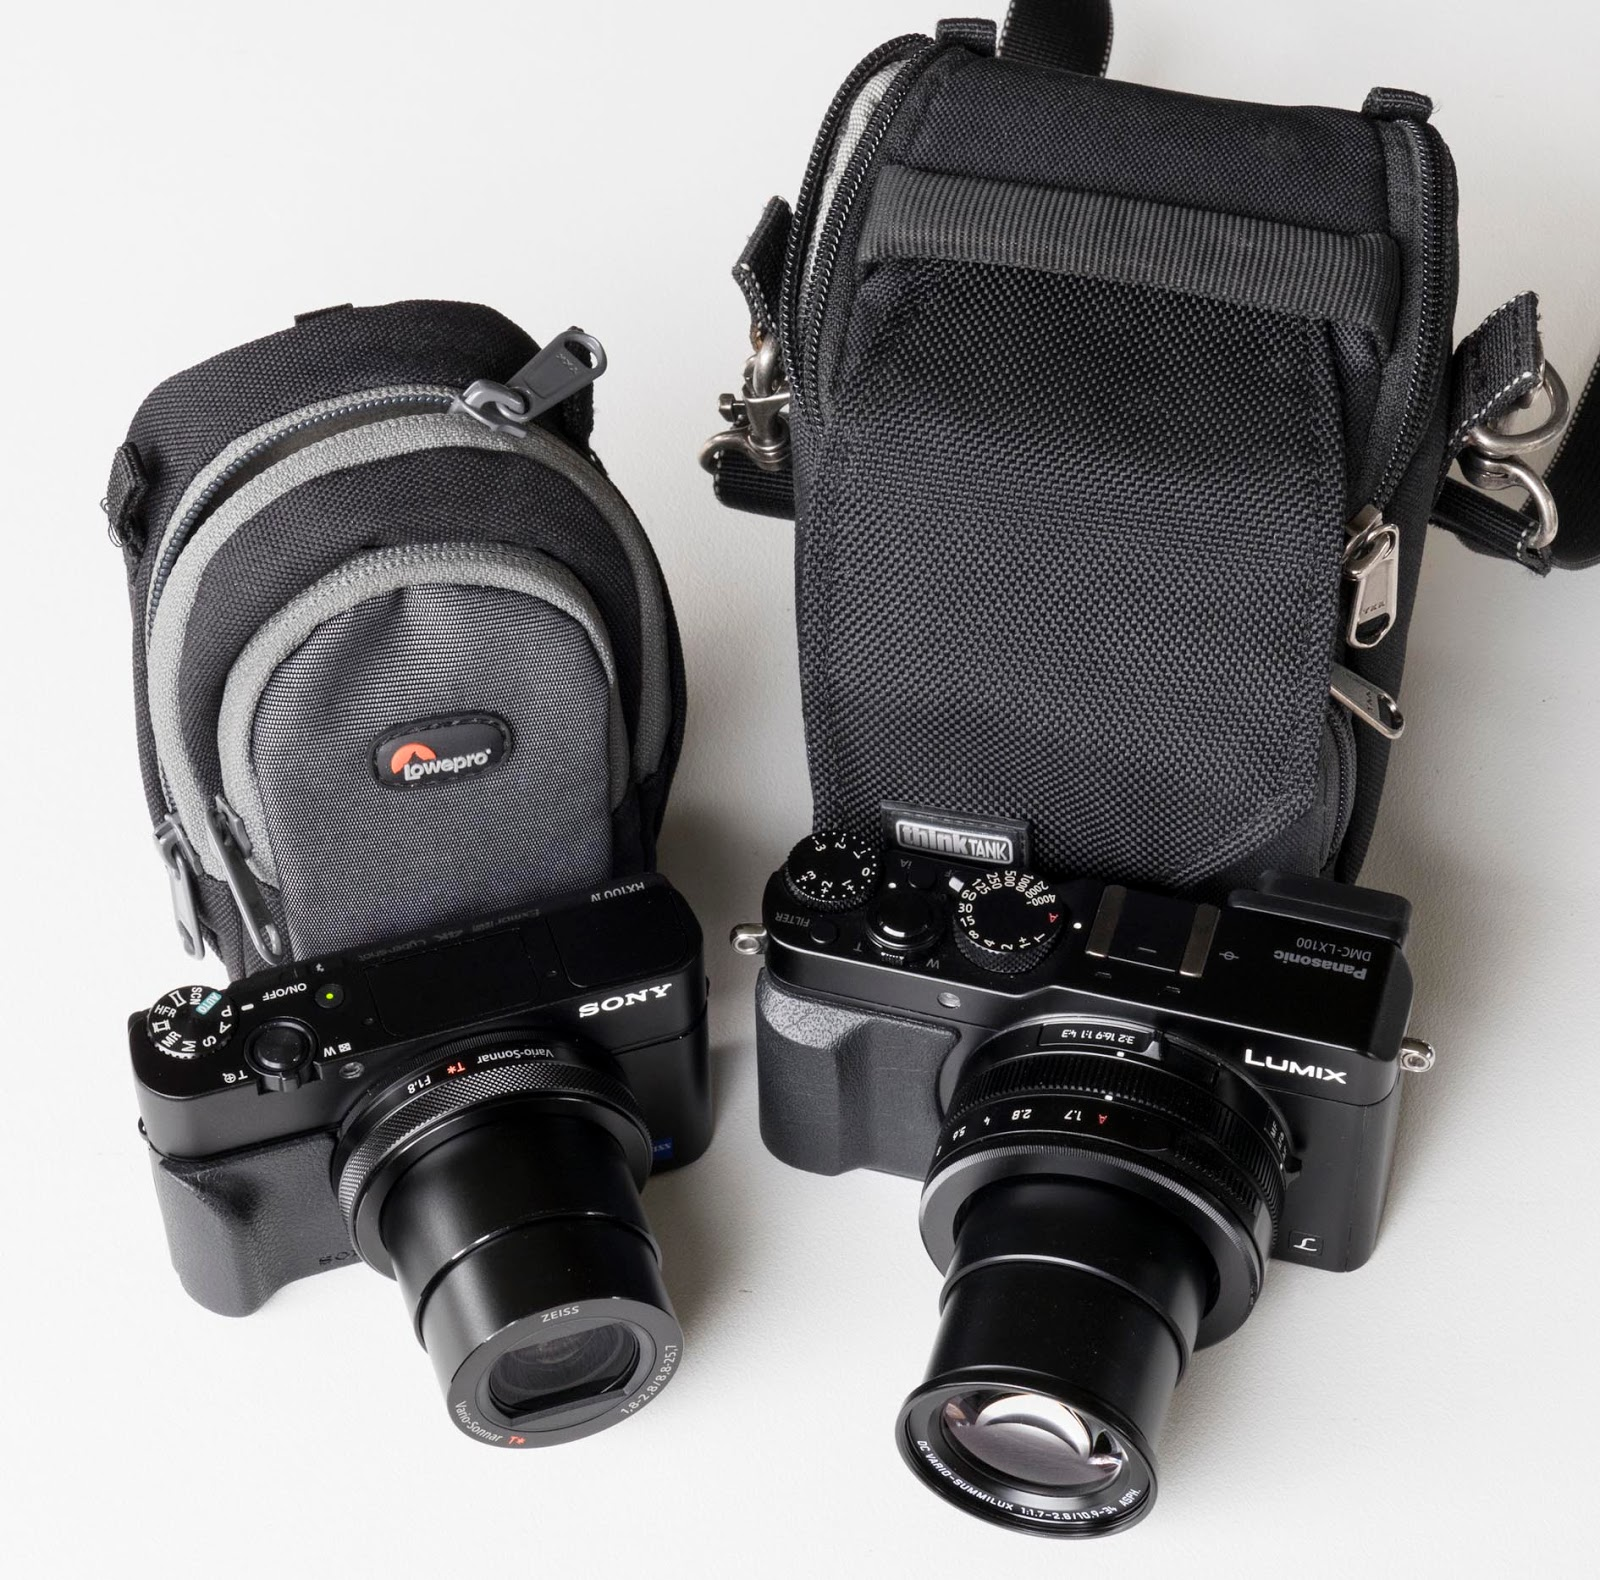 Sony RX100 Mk4 vs Panasonic LX100 Which is the best advanced